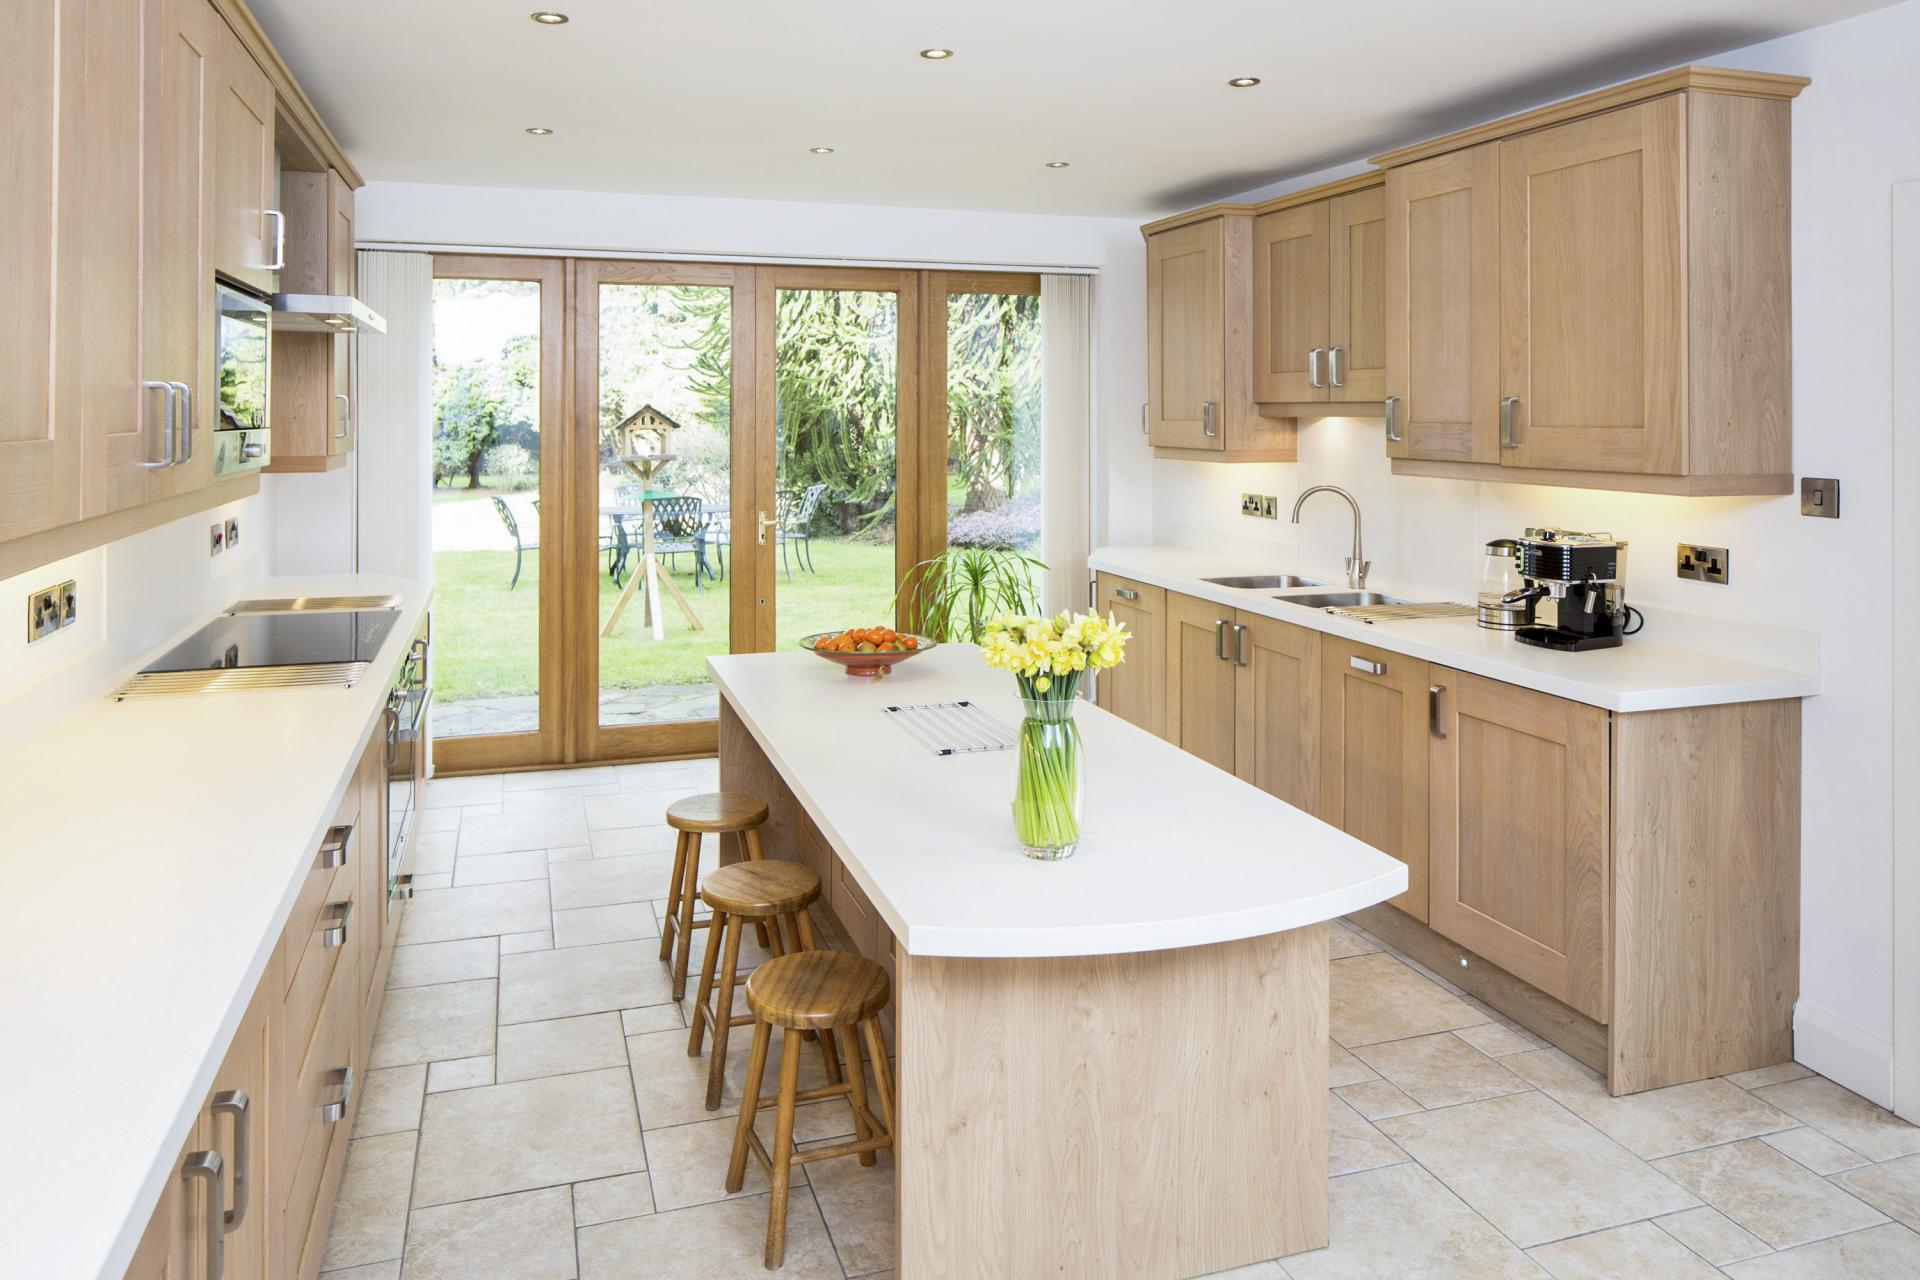 6 Bedroom Detached For Sale In Coventry